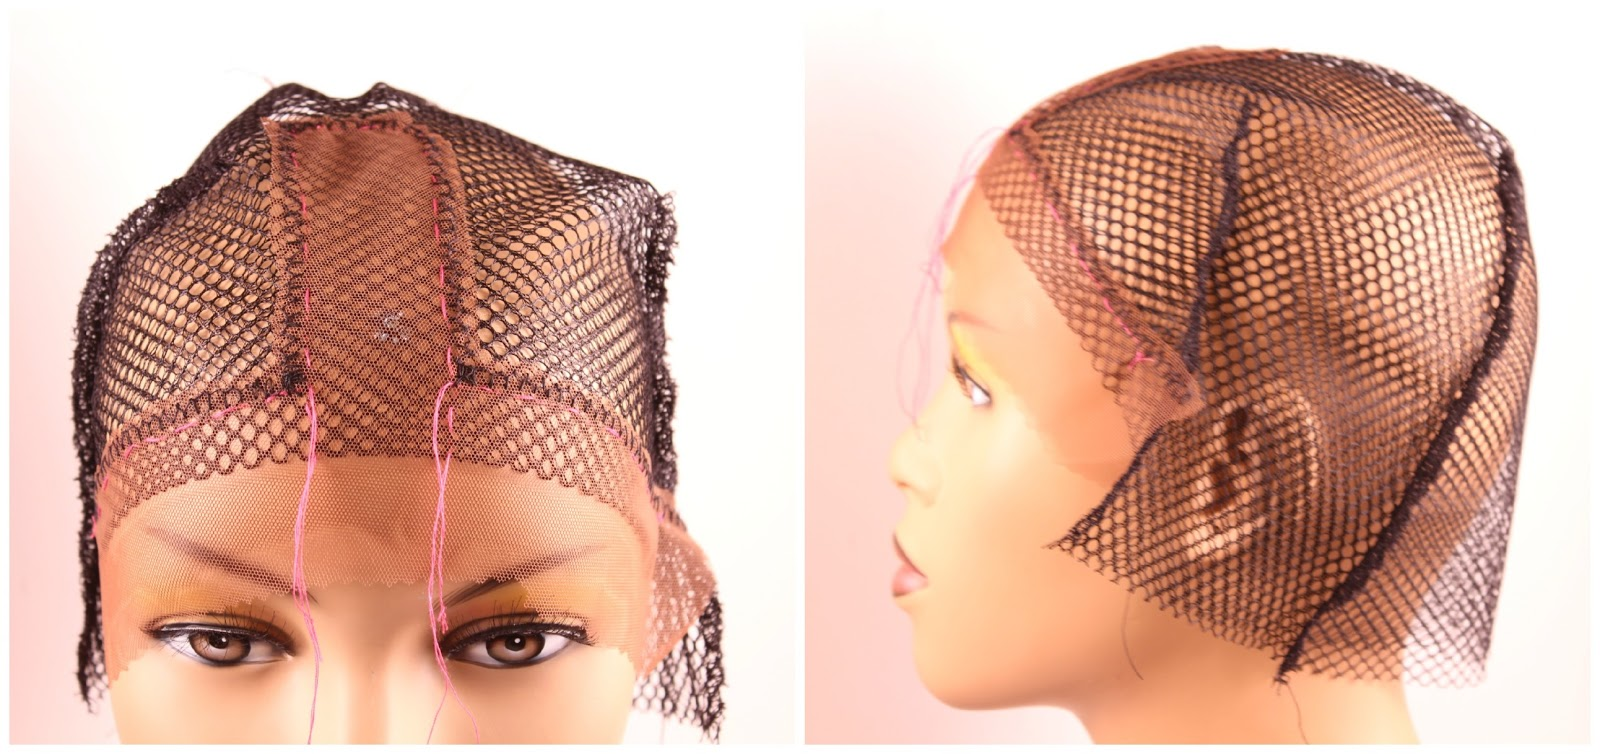 U Part Wig With Lace And Ventilation Part 2